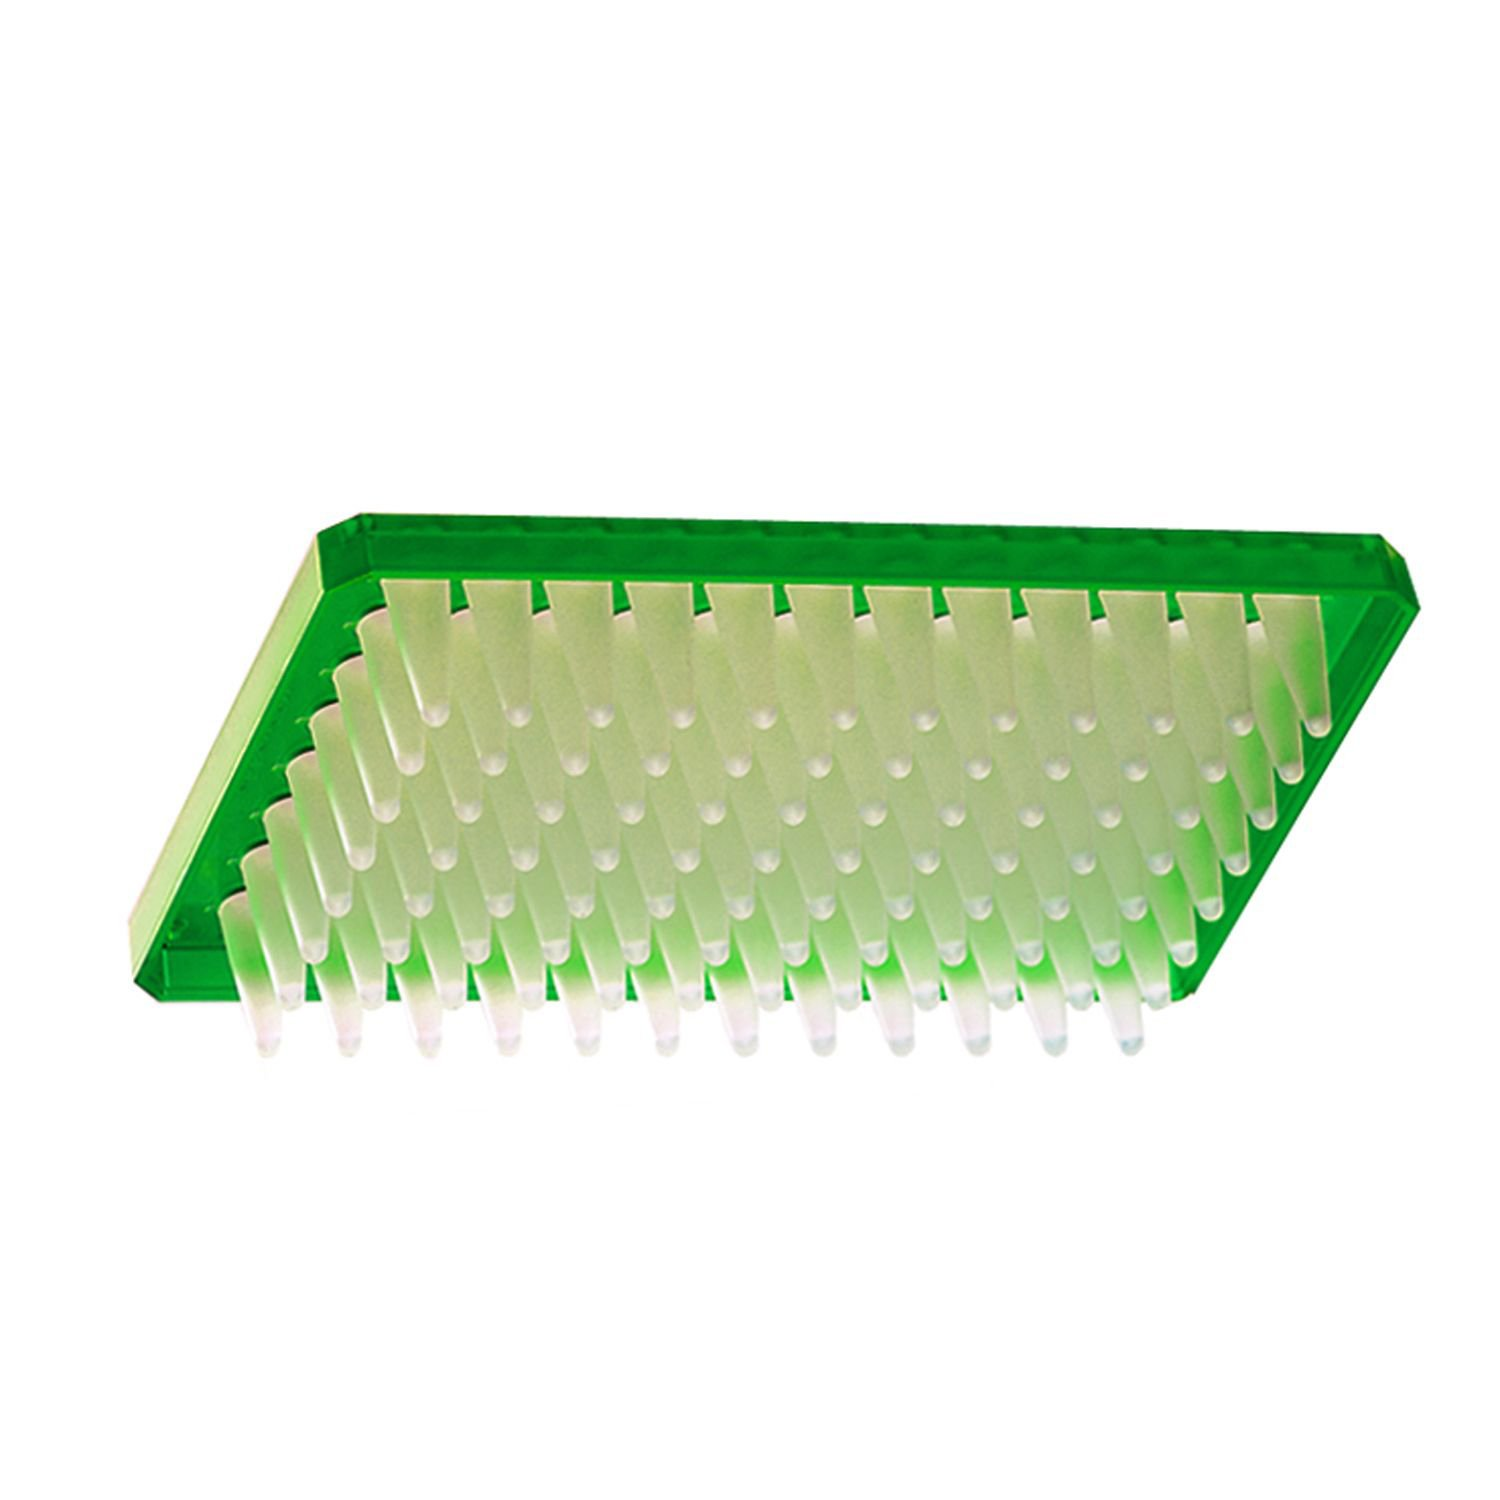 Axygen P-96-450V-G Deep Well 96-Well x 500 microliter Assay Storage Microplate with V-Bottom Wells, Green PP (1 Case: 10 Plates/Unit; 5 Units/Case)